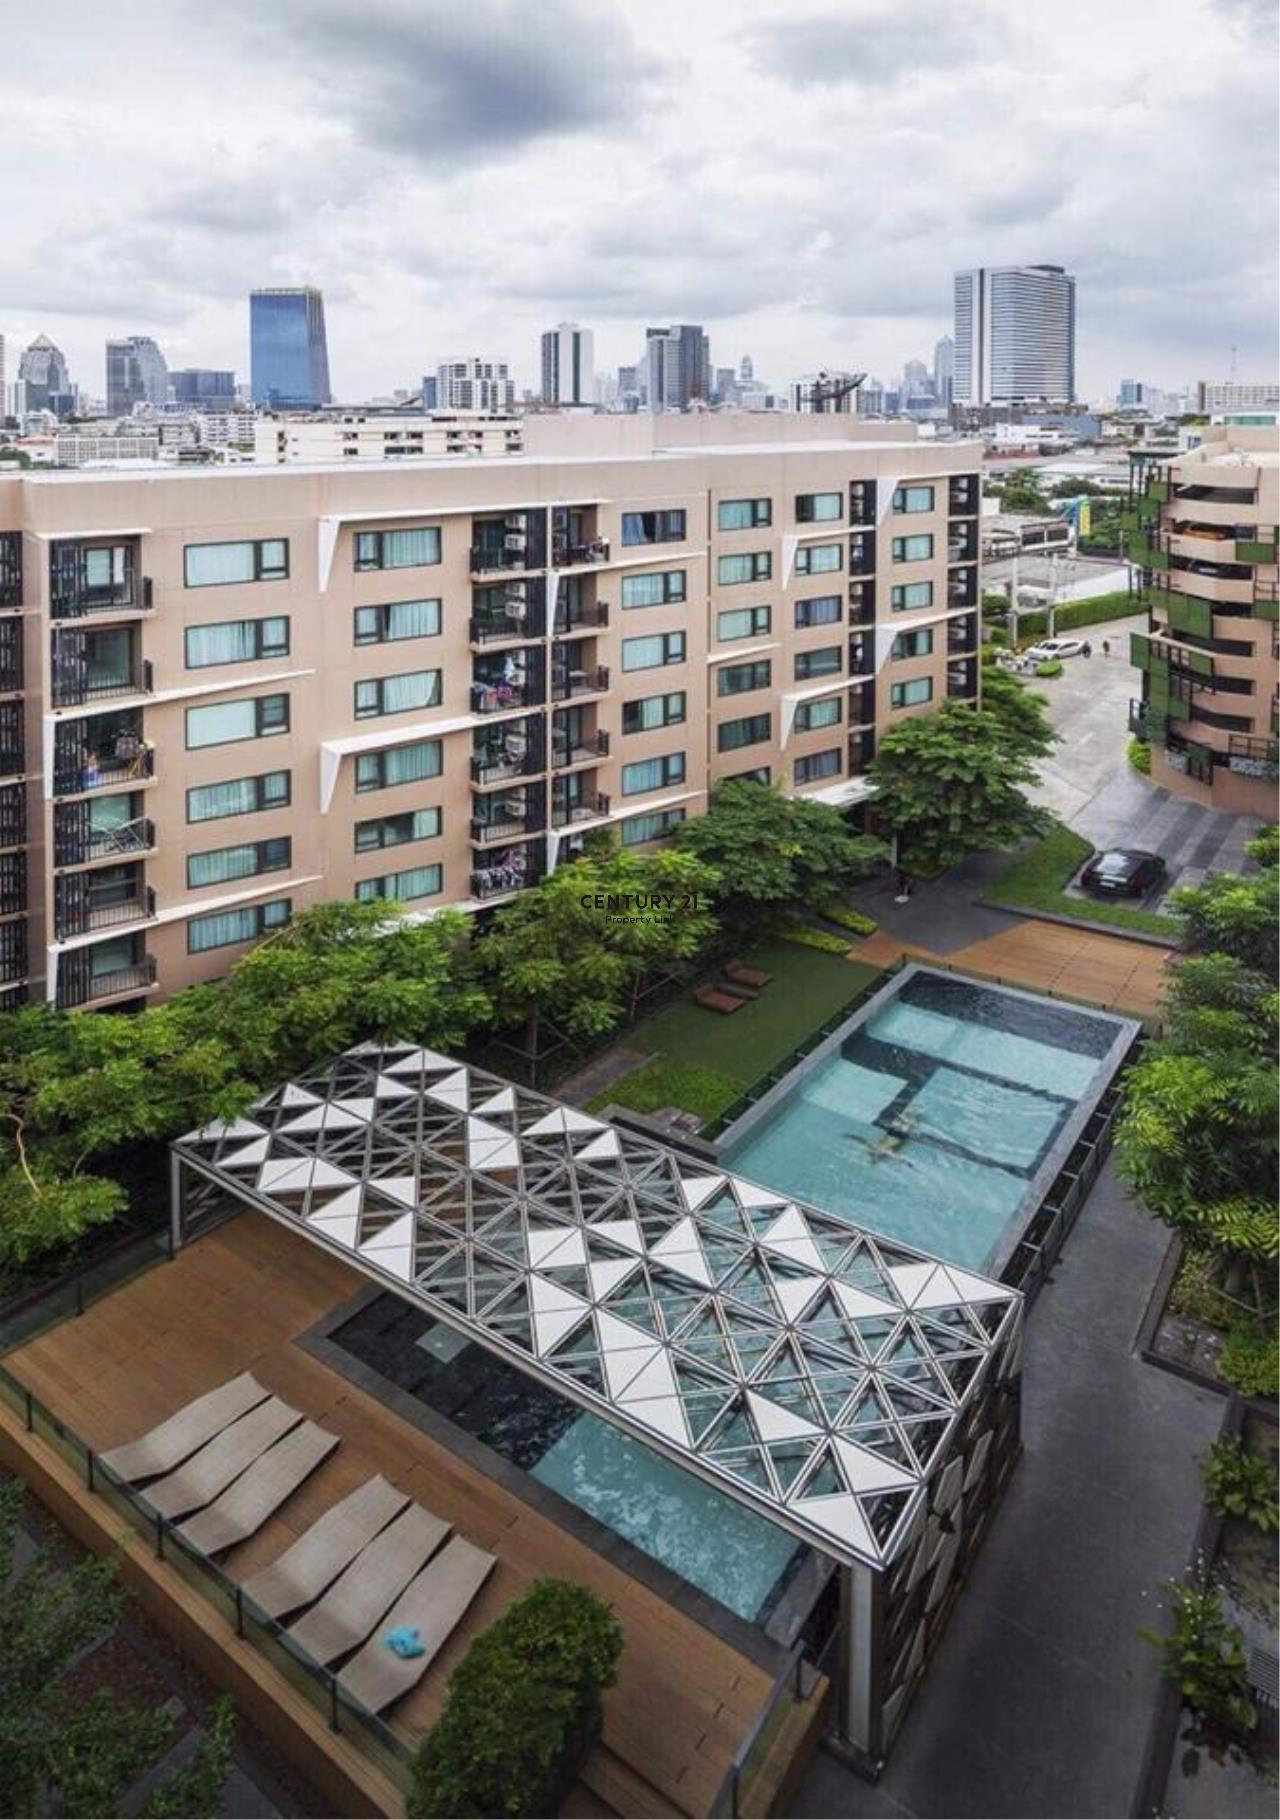 Century21 Property Link Agency's 39-CC-61515 Condolette Pixel Sathorn Condo for Sale 1 bedroom Near MRT Lumpini Sale Price 3.9MB. 11